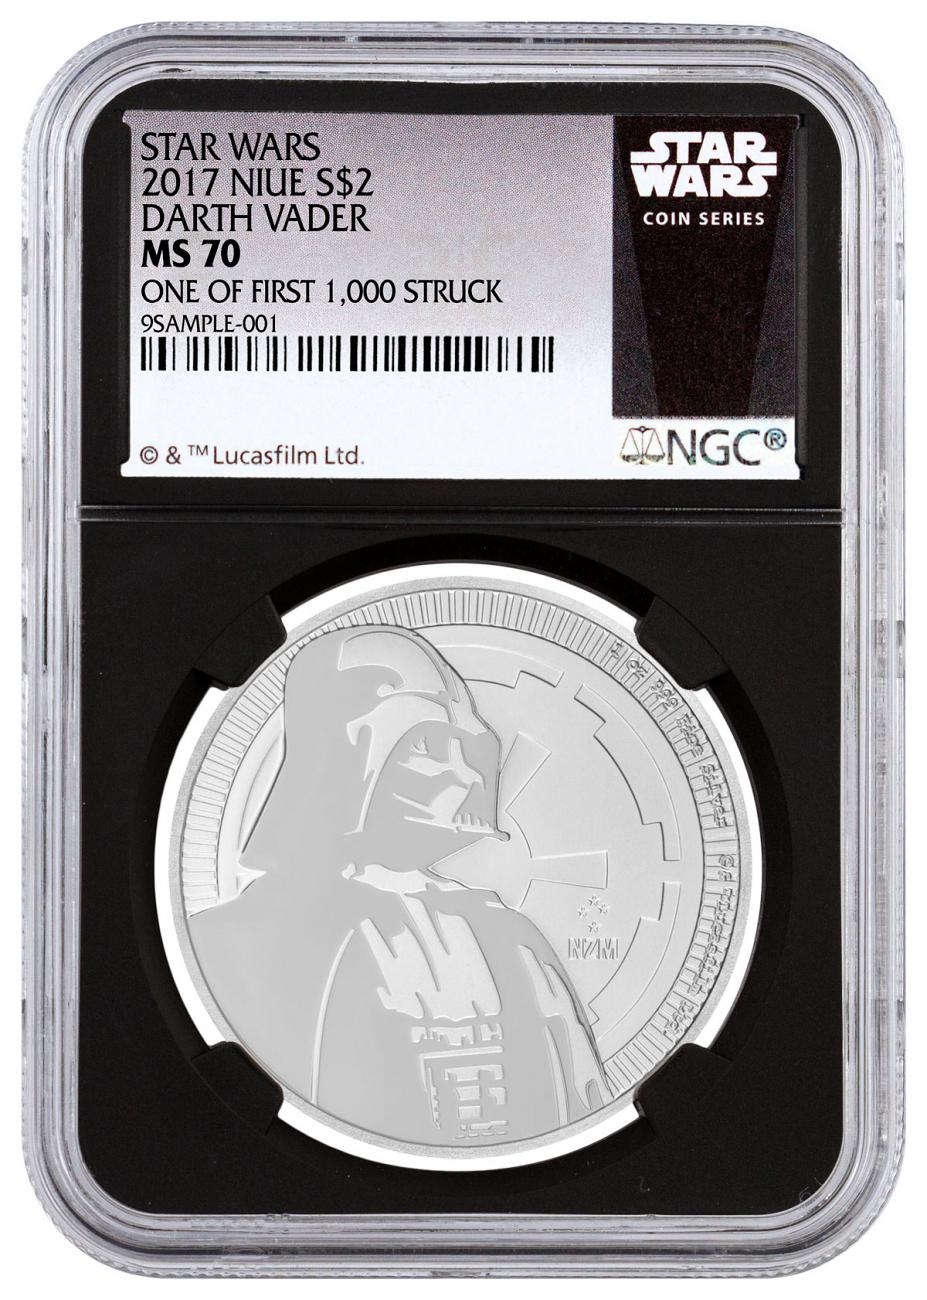 2017 Niue Star Wars Classic - Darth Vader 1 oz Silver $2 Coin NGC MS70 One of First 1,000 Struck Black Core Holder Exclusive Star Wars Label